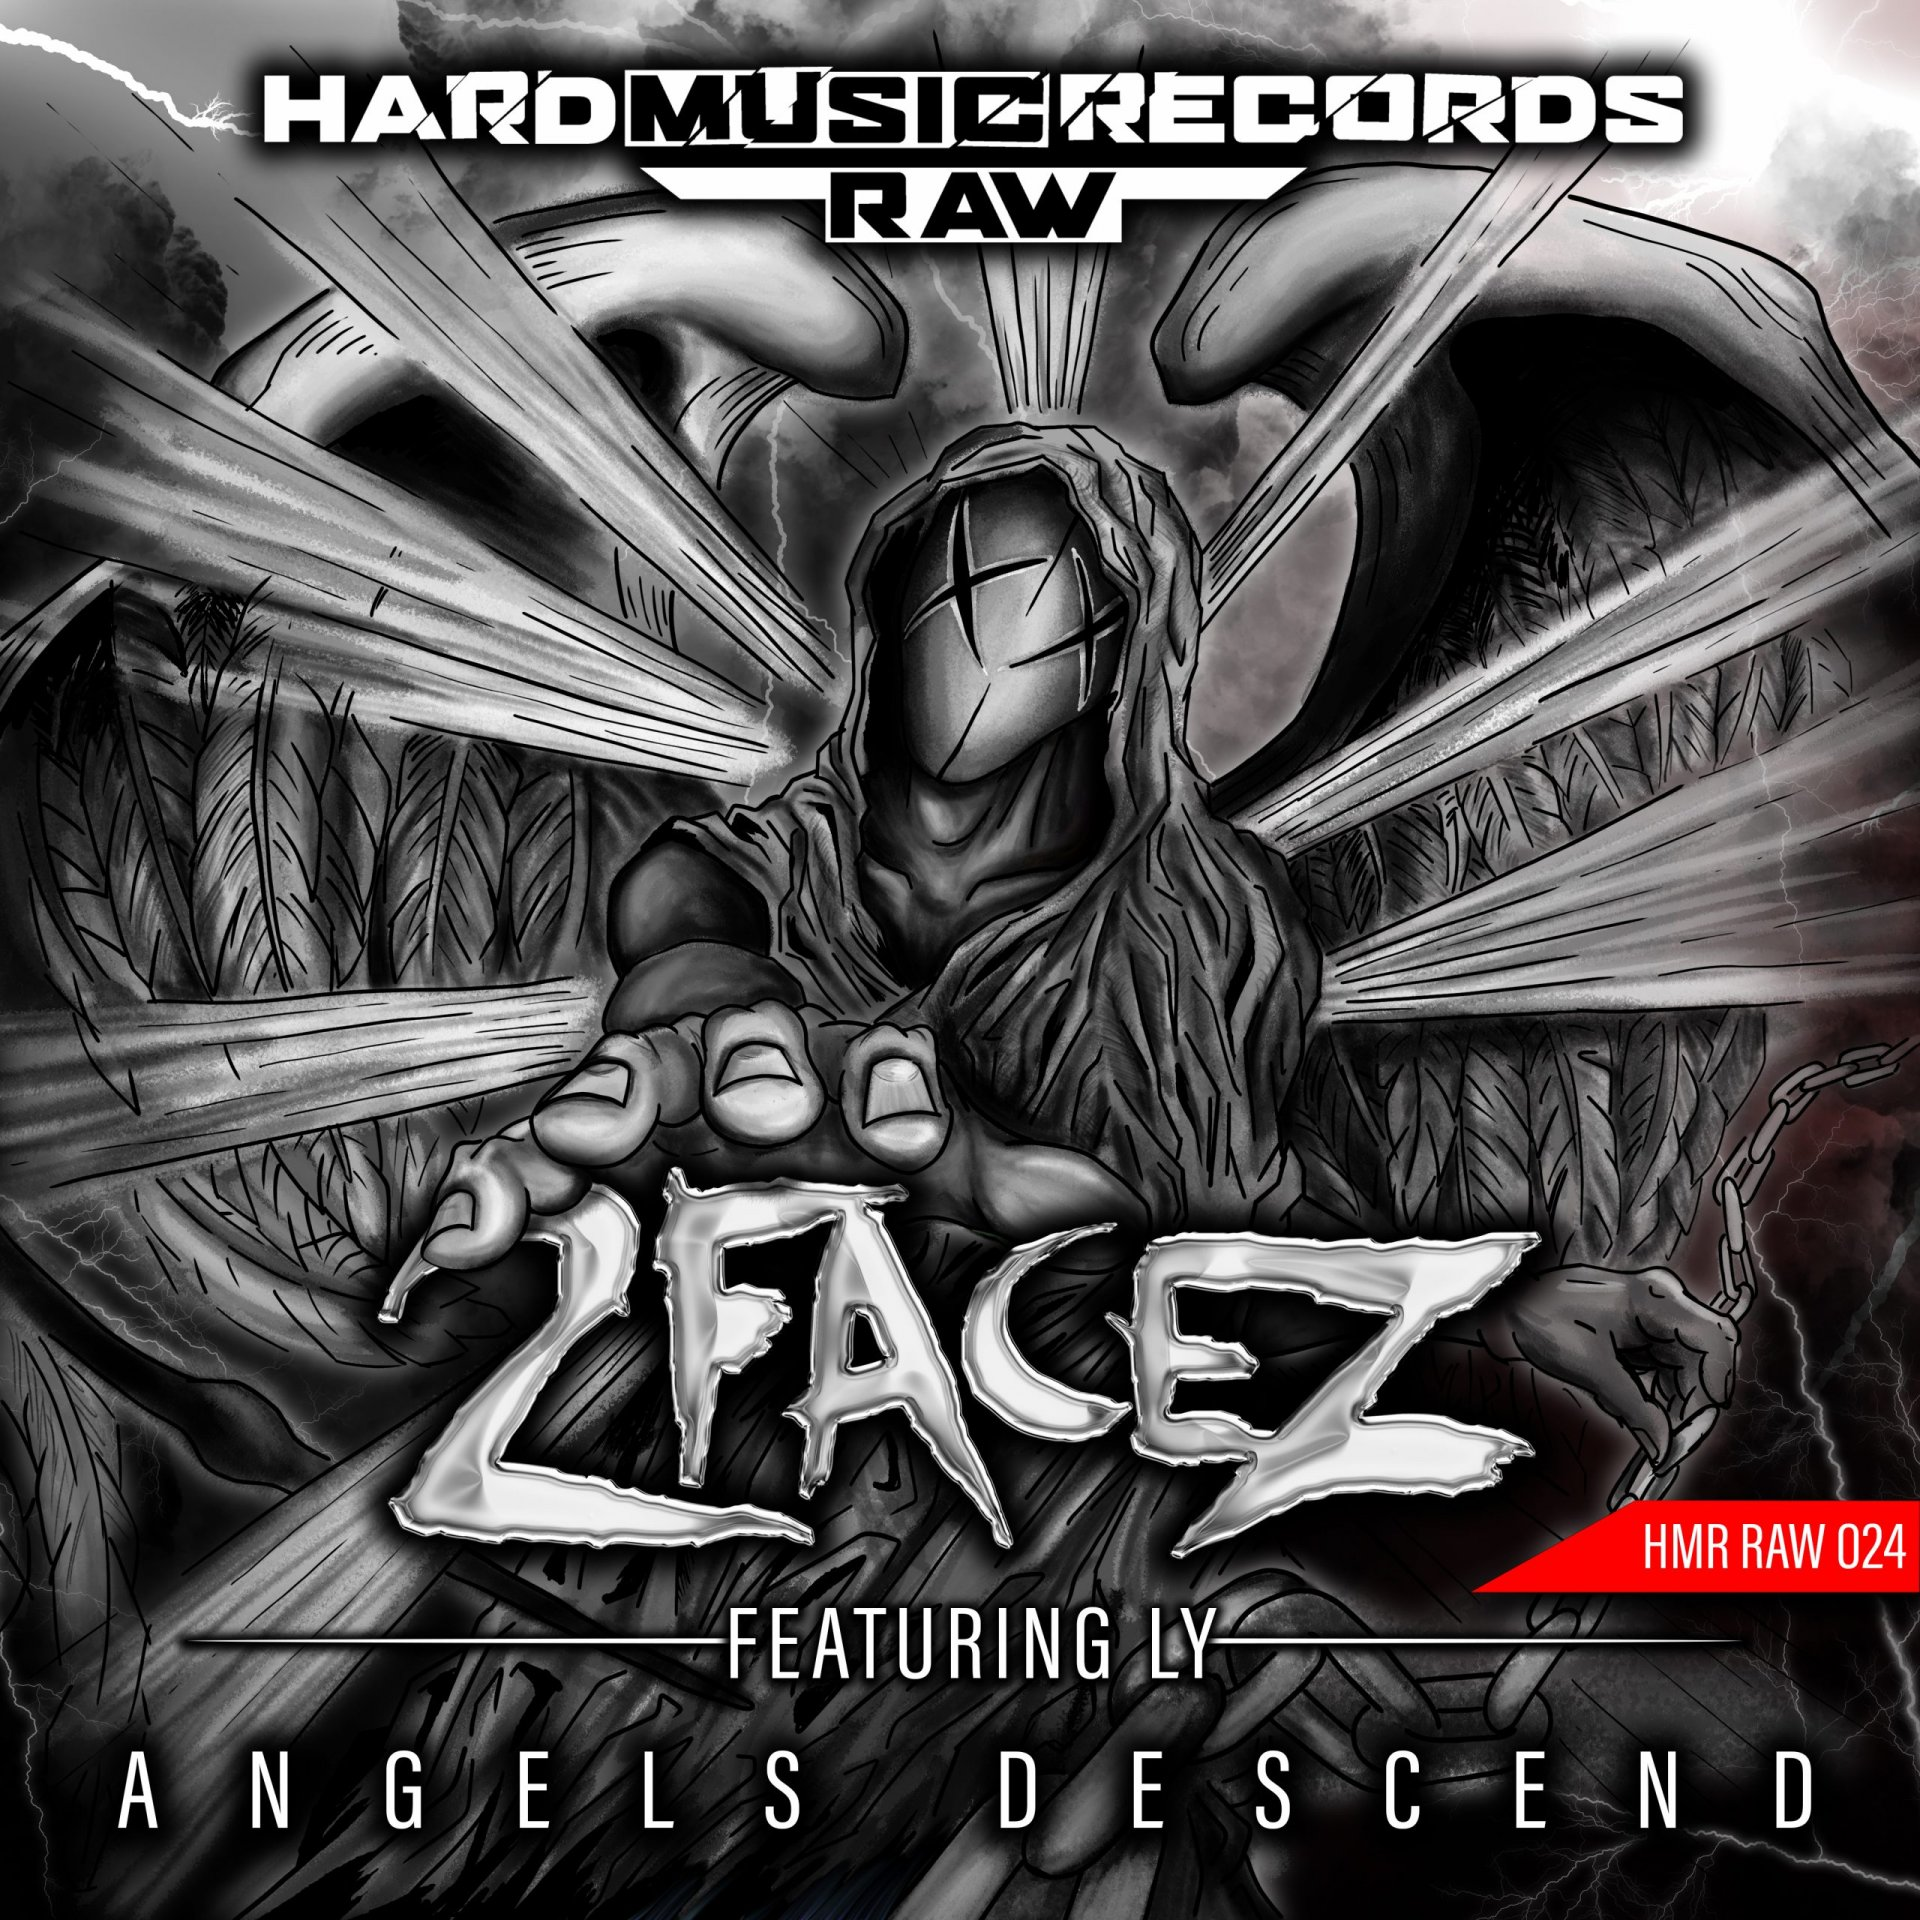 Angels Descend by 2Facez feat. LY